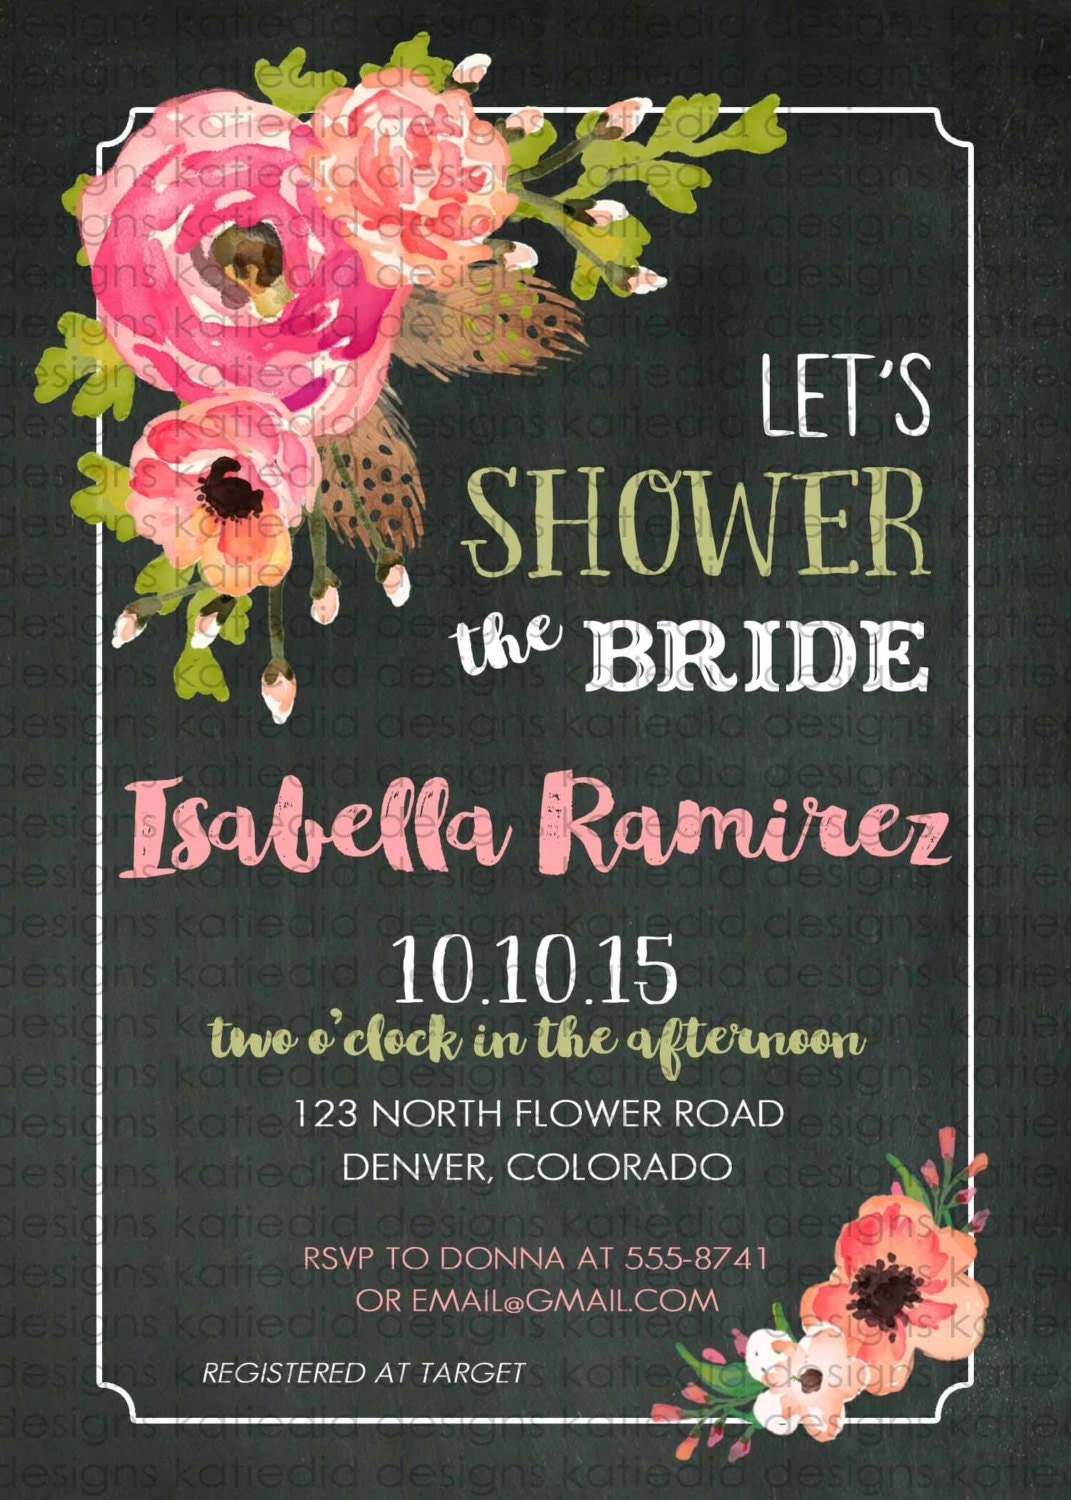 Couples Bridal Invitation Traveling from Miss to Mrs floral chic ...